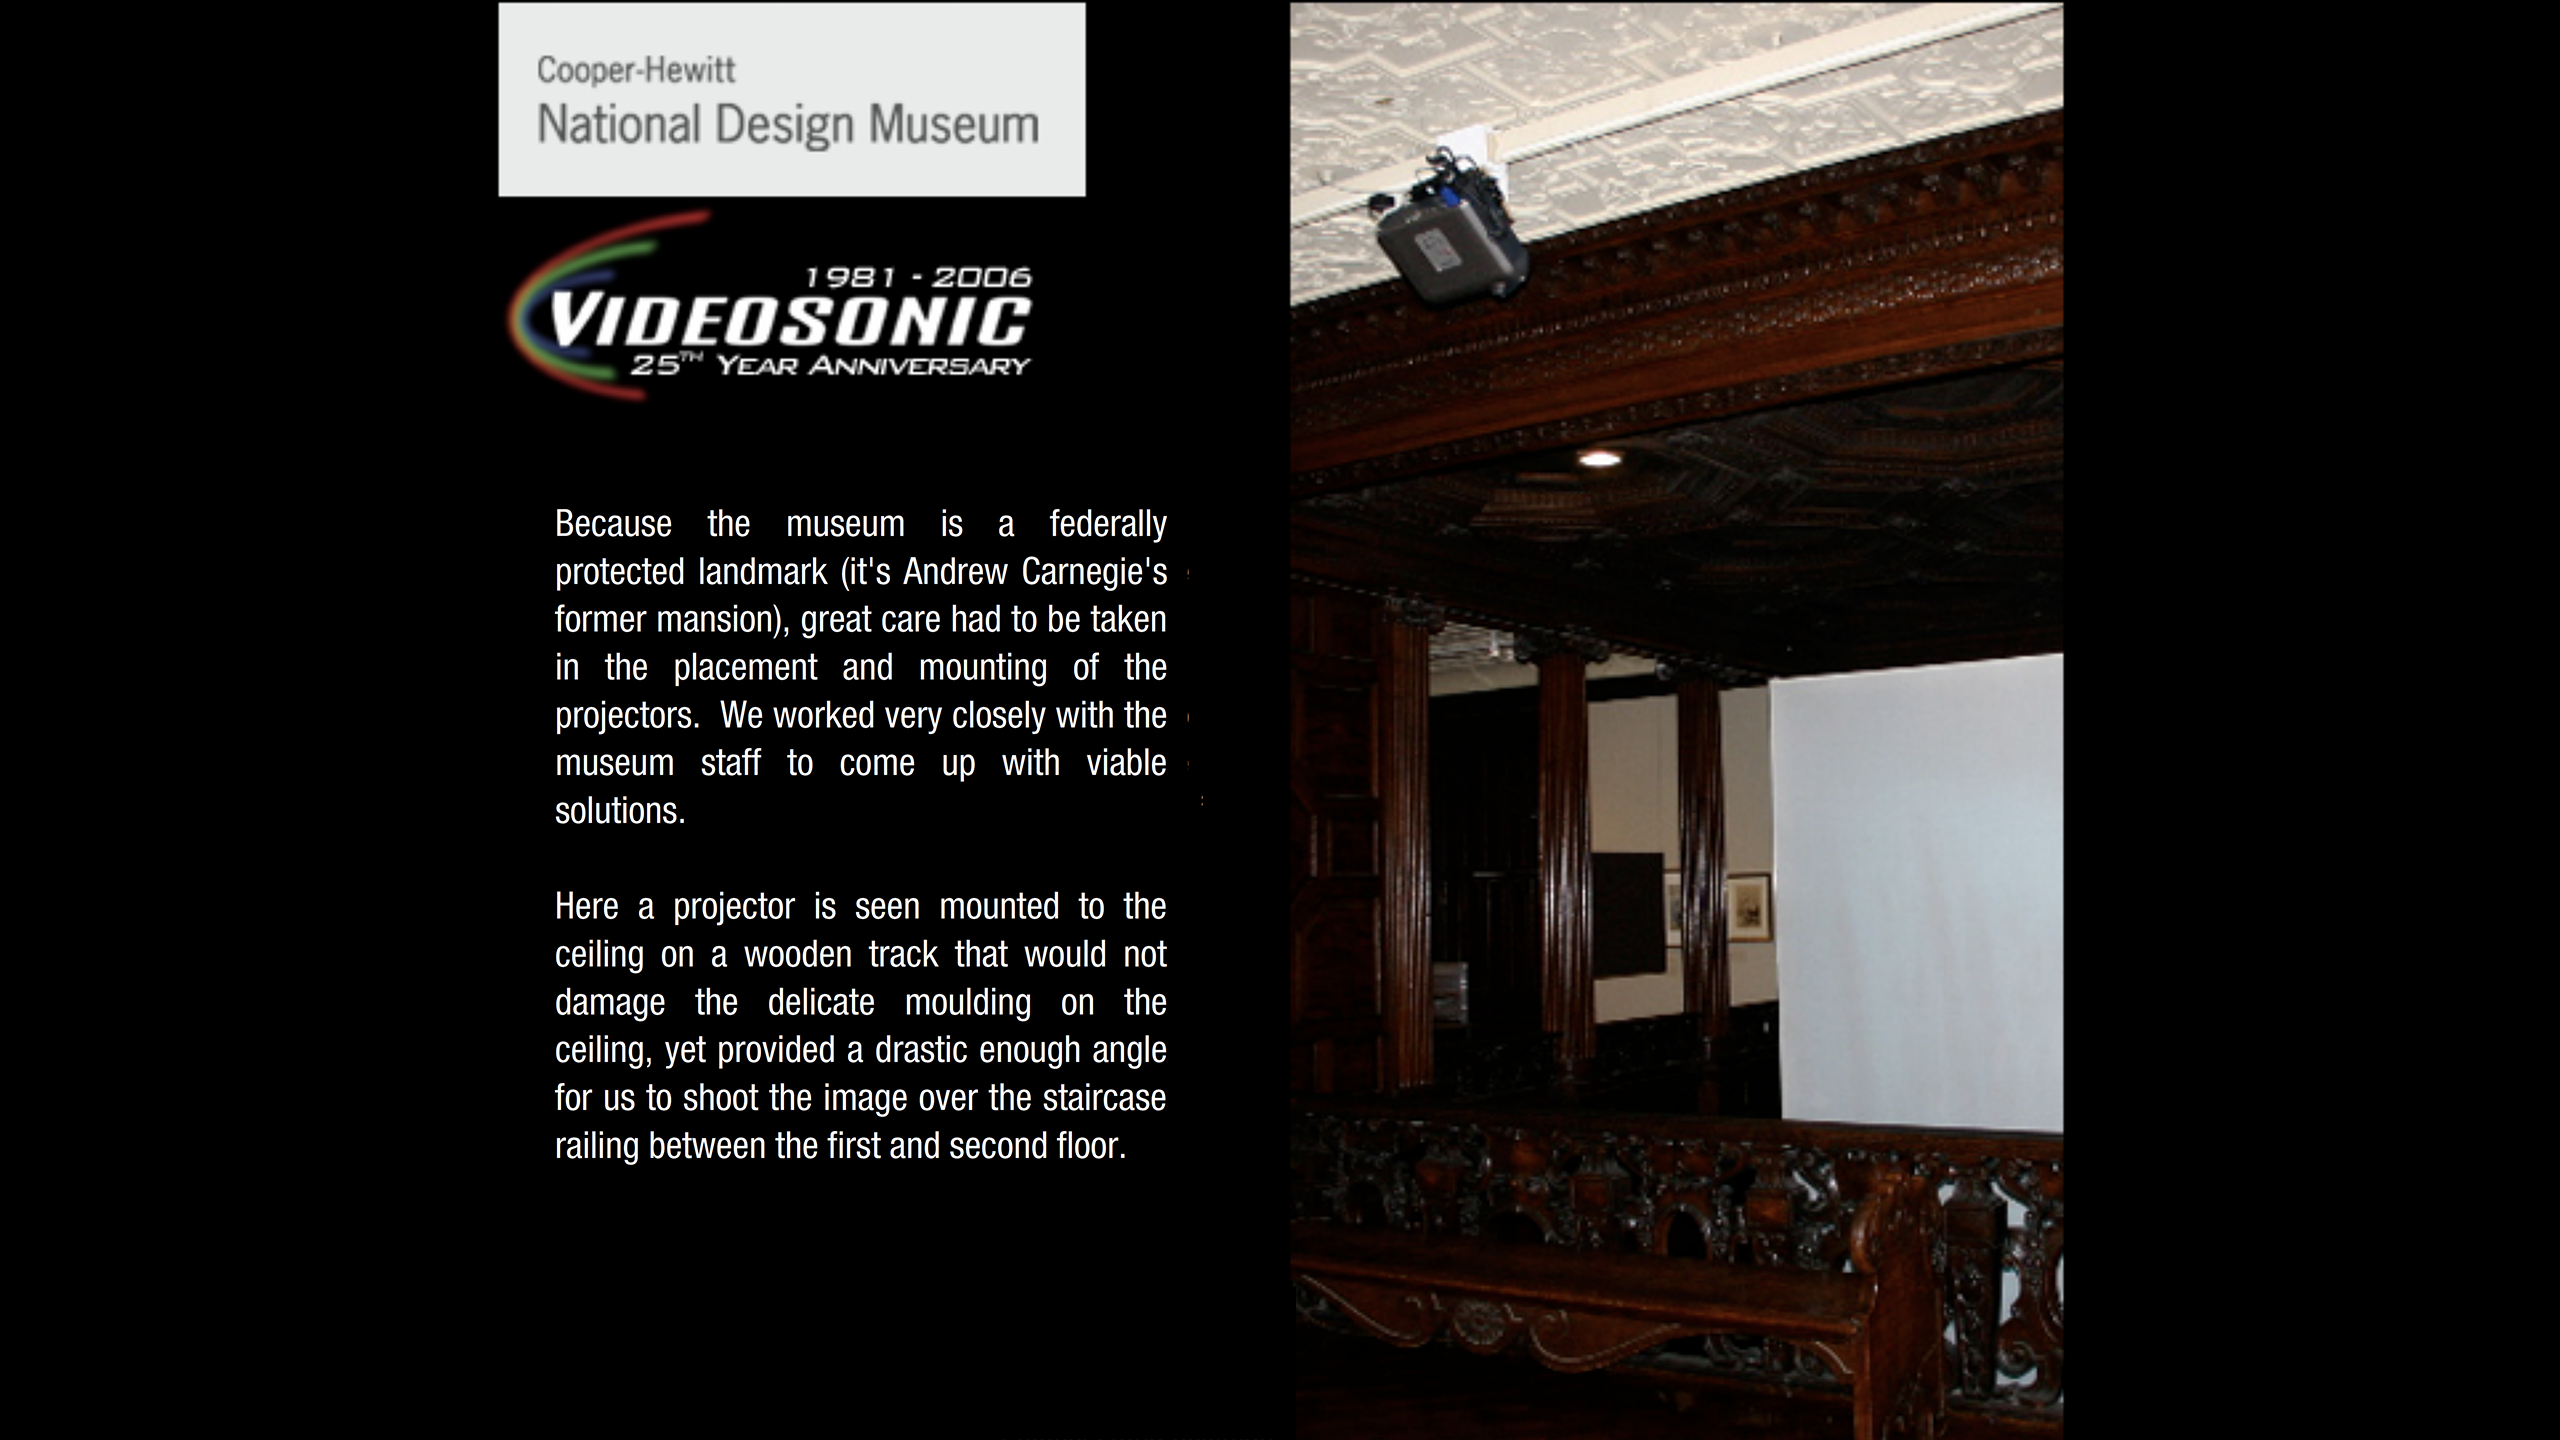 Because the museum is a federally protected landmark (it's Andrew Carnegie's former mansion), great care had to be taken in the placement and mounting of the projectors. We worked very closely with the museum staff to come up with viable solutions. Here a projector is seen mounted to the ceiling on a wooden track that would not damage the delicate molding on the ceiling, yet provided a drastic enough angle for us to shoot the image over the staircase railing between the first and second floor.